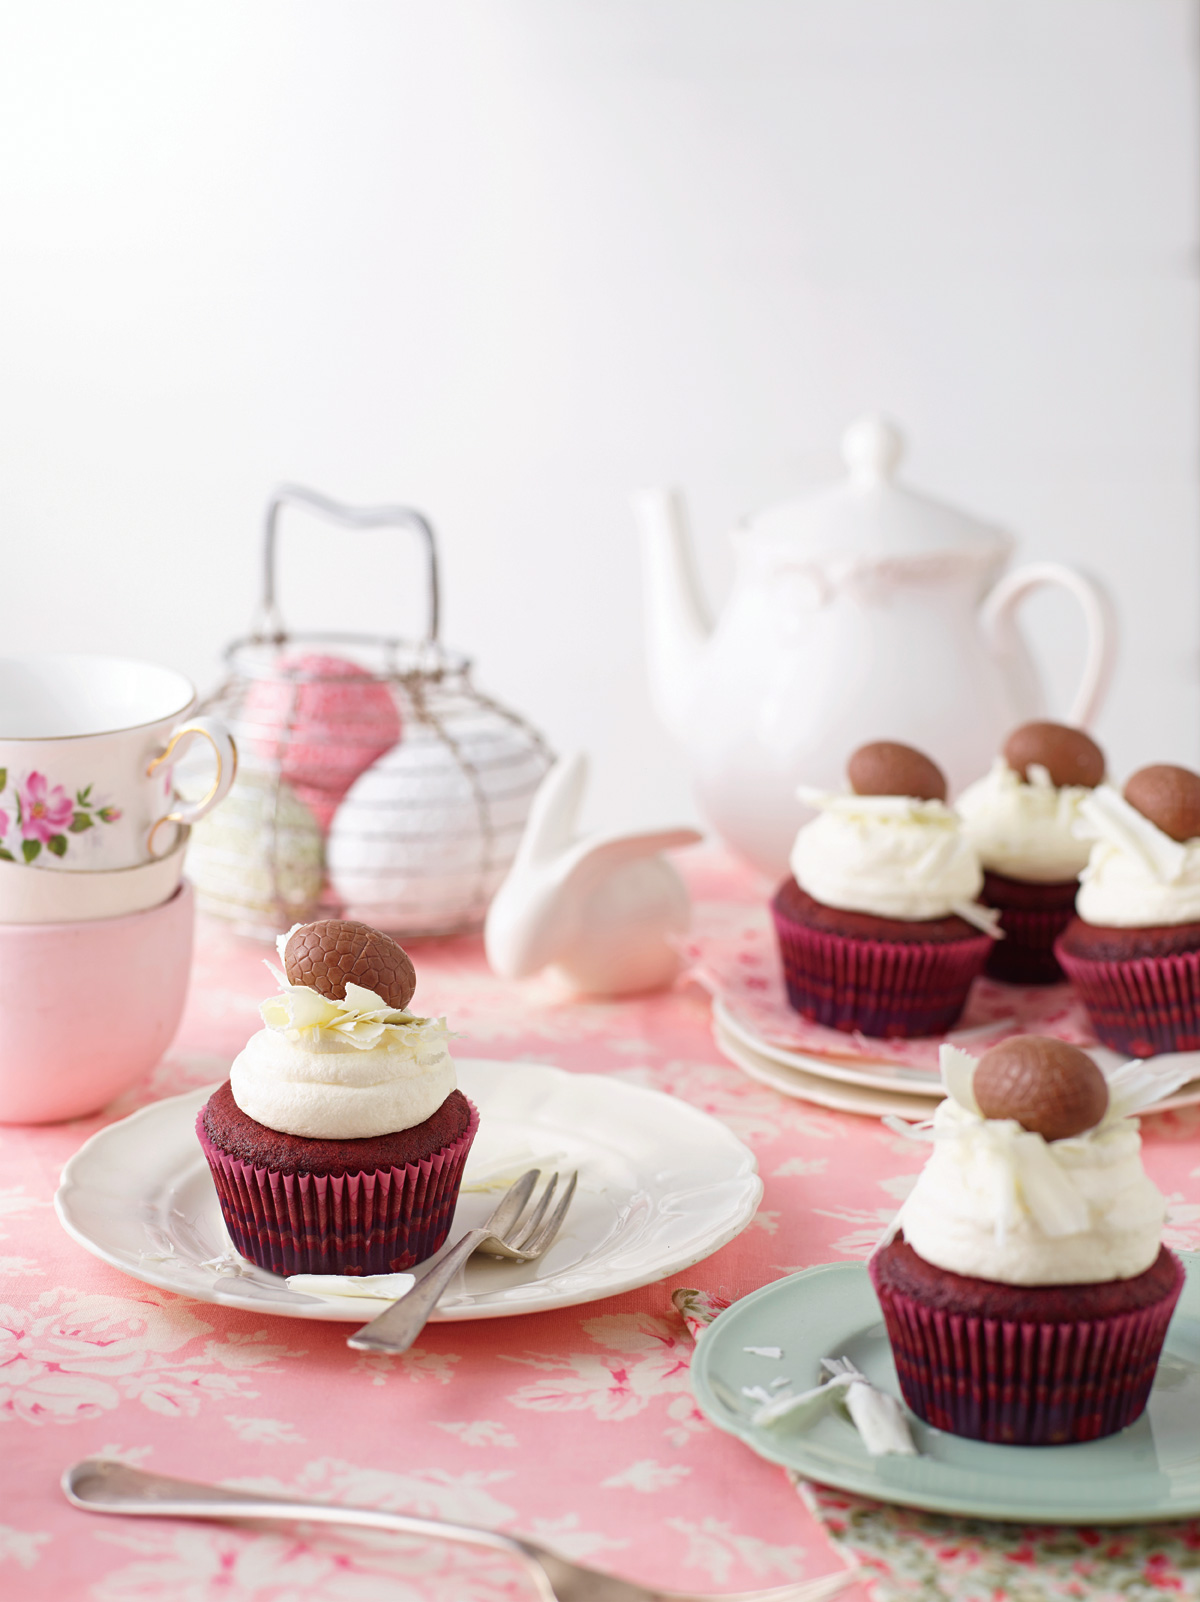 Delicious red velvet cupcake recipe for easter baking. Make this recipe from our Easter baking collection with kids this Easter.